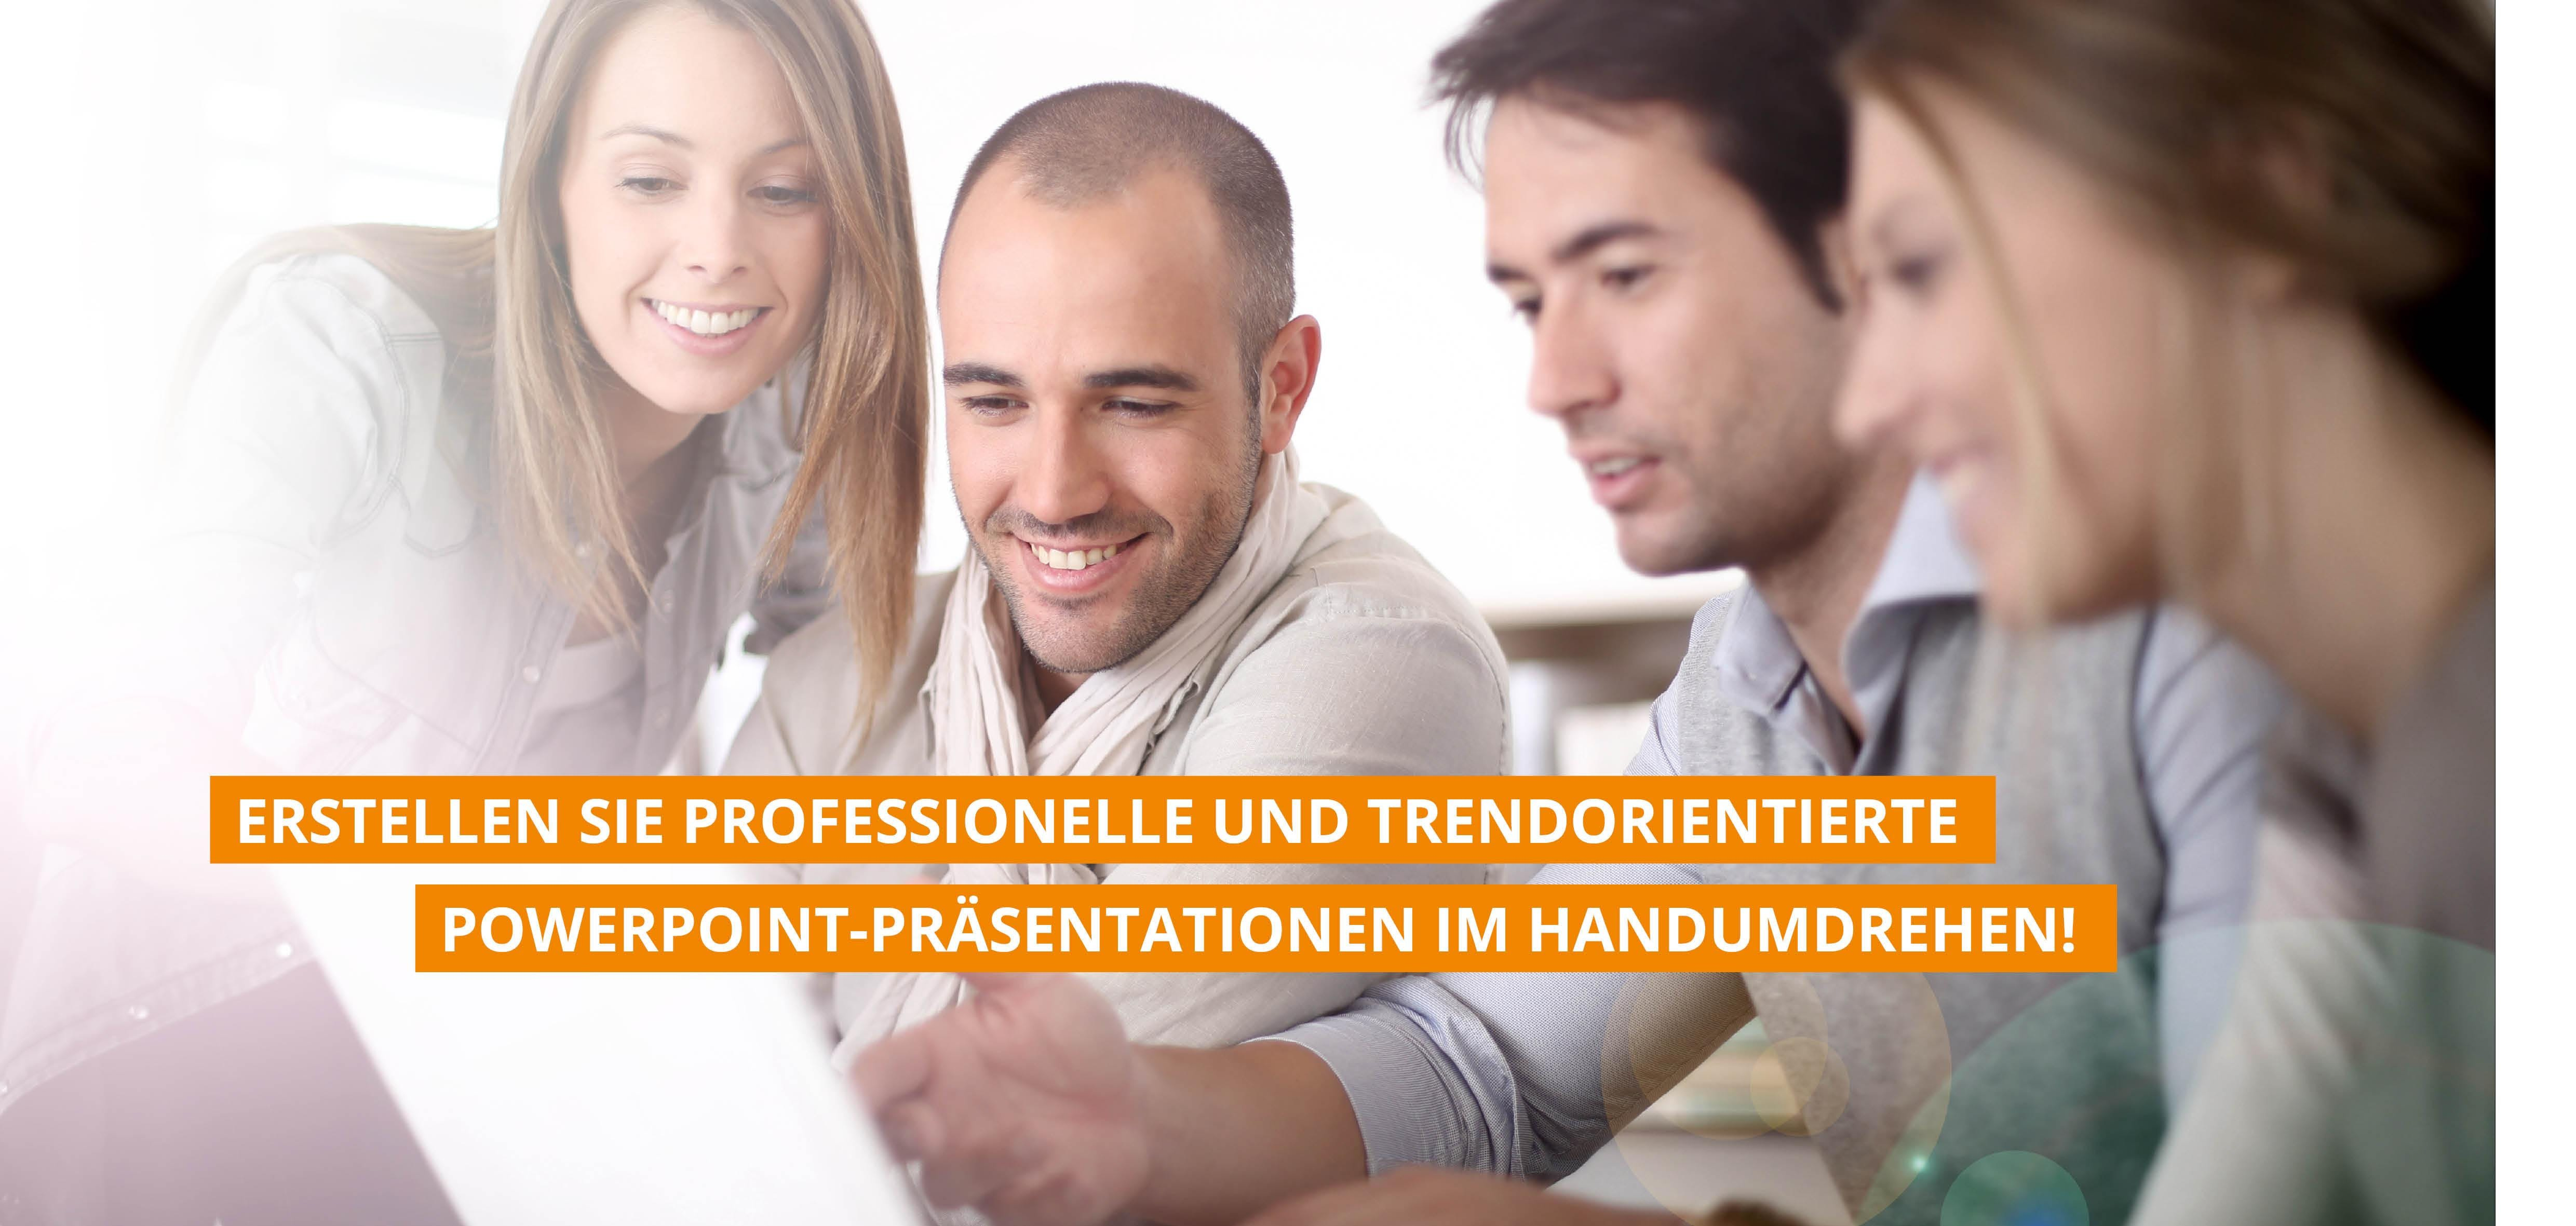 Modul II: Kreatives PowerPoint-Design & faszinierende Animationen 07.11.2018